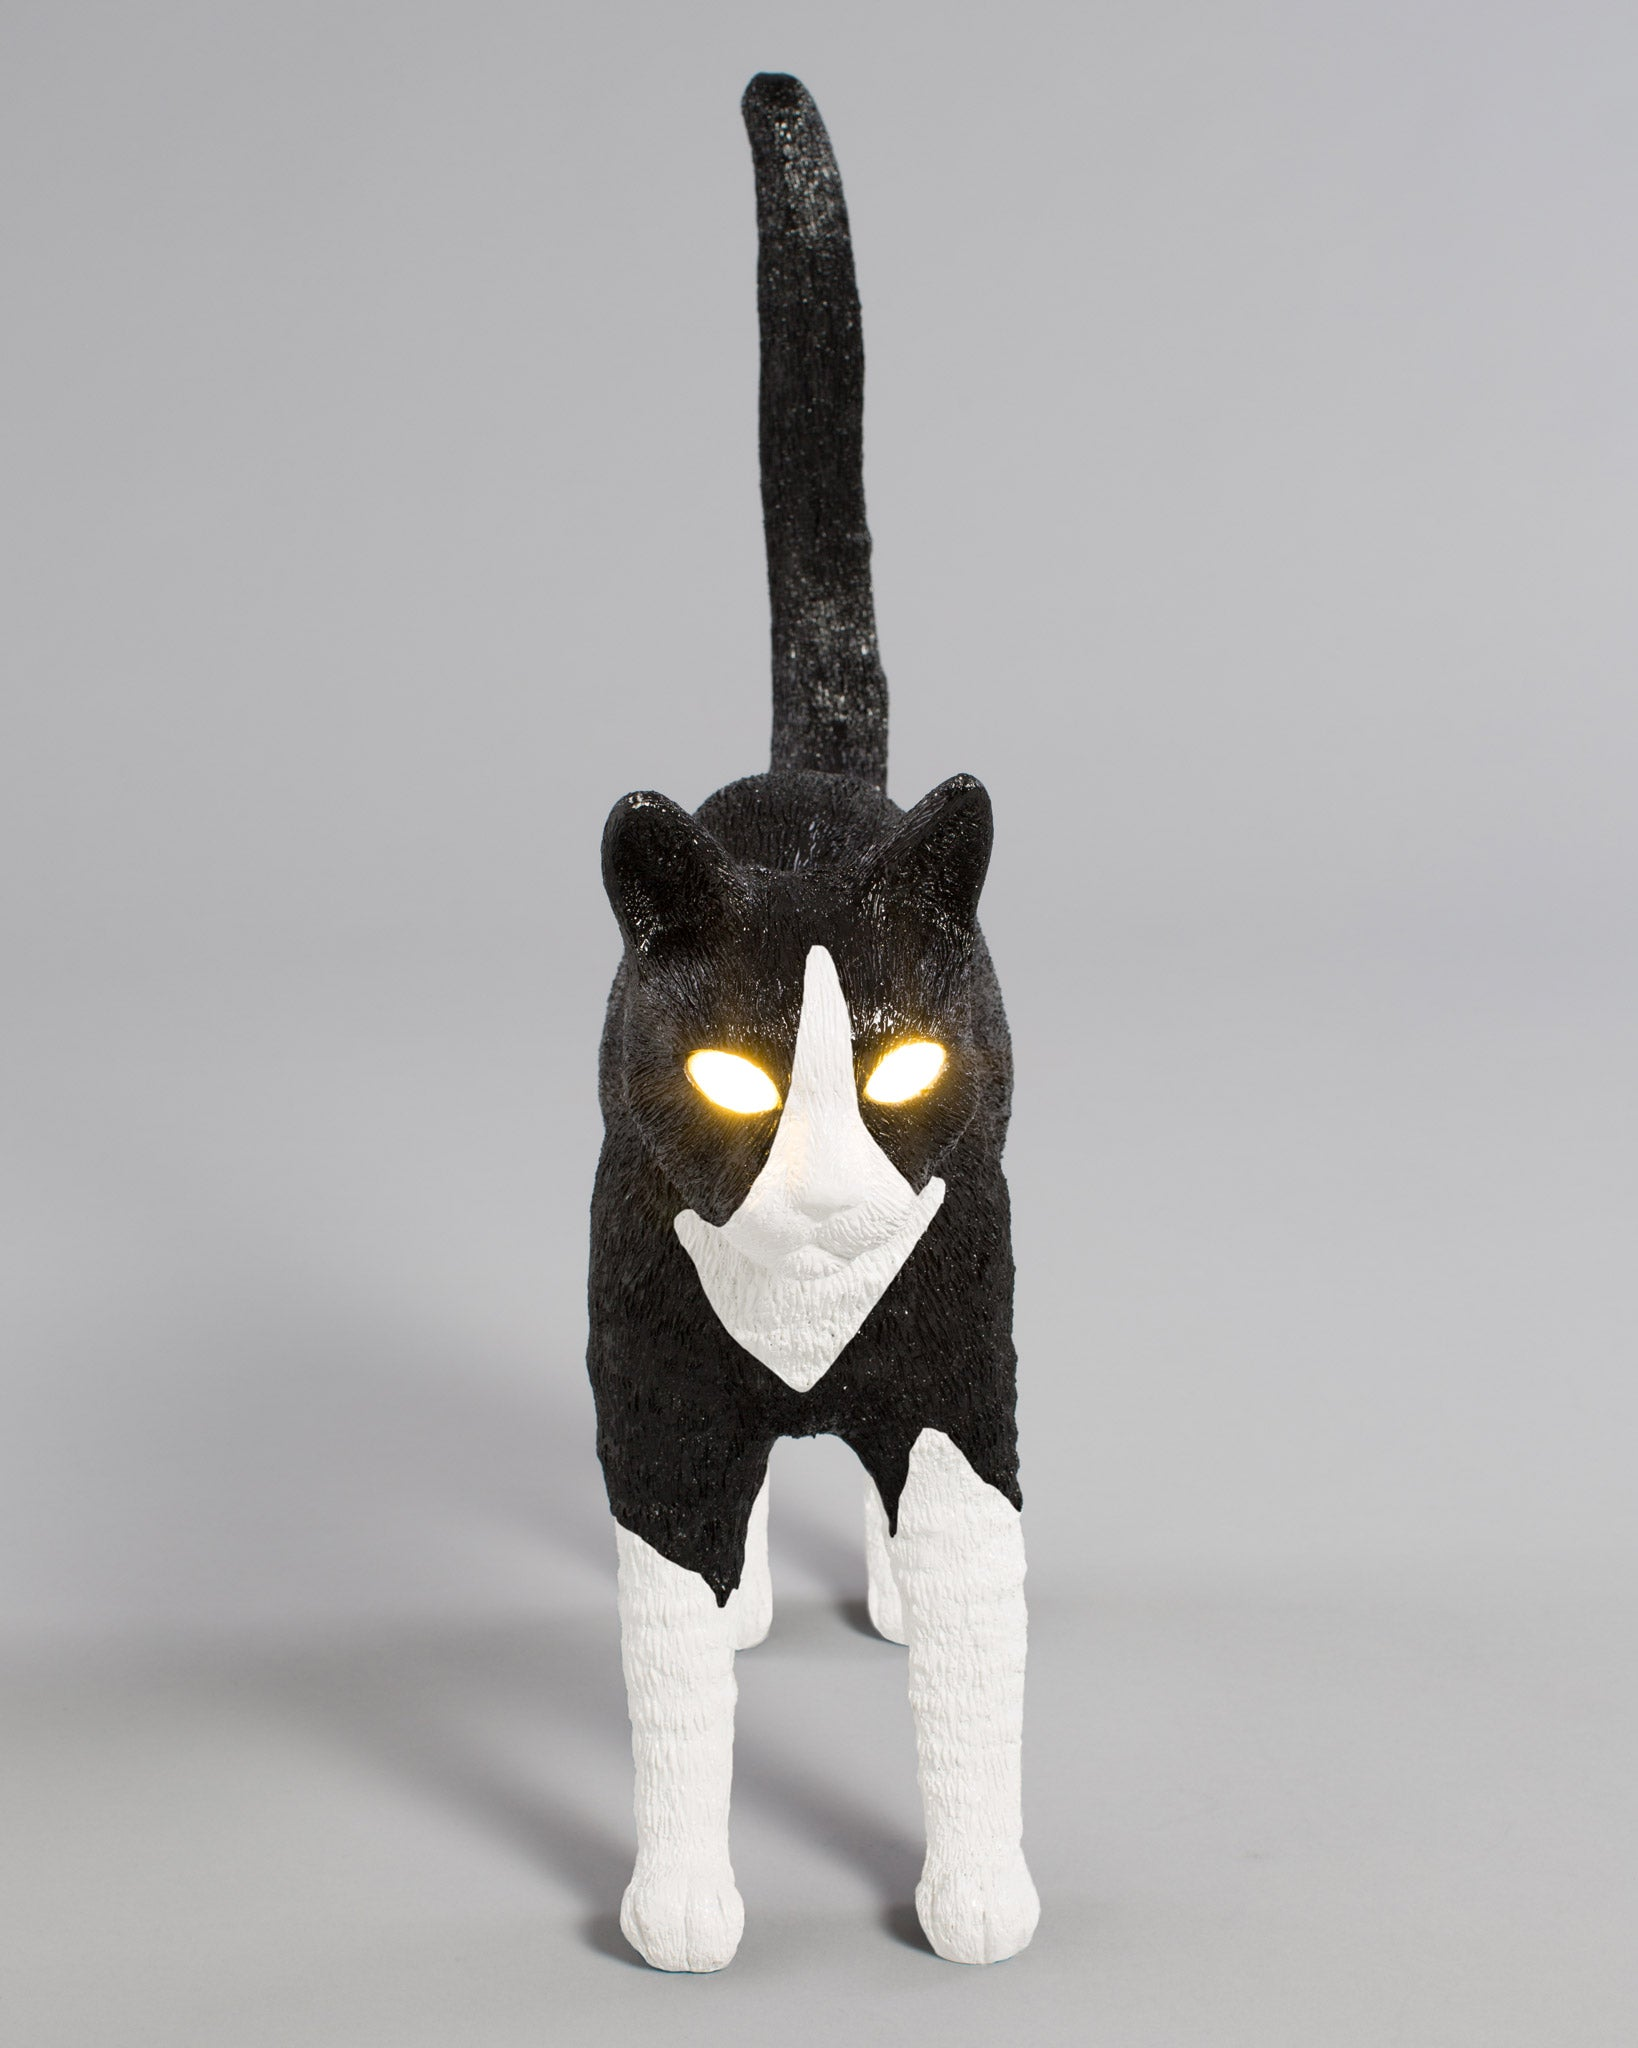 ... The Cat Lamp Is Produced Entirely From Resin And Follows In The  Footsteps Of The Pairs Launched Banana Lamp And Selettiu0027s Monkey U0026 Mouse  Lamps By ...